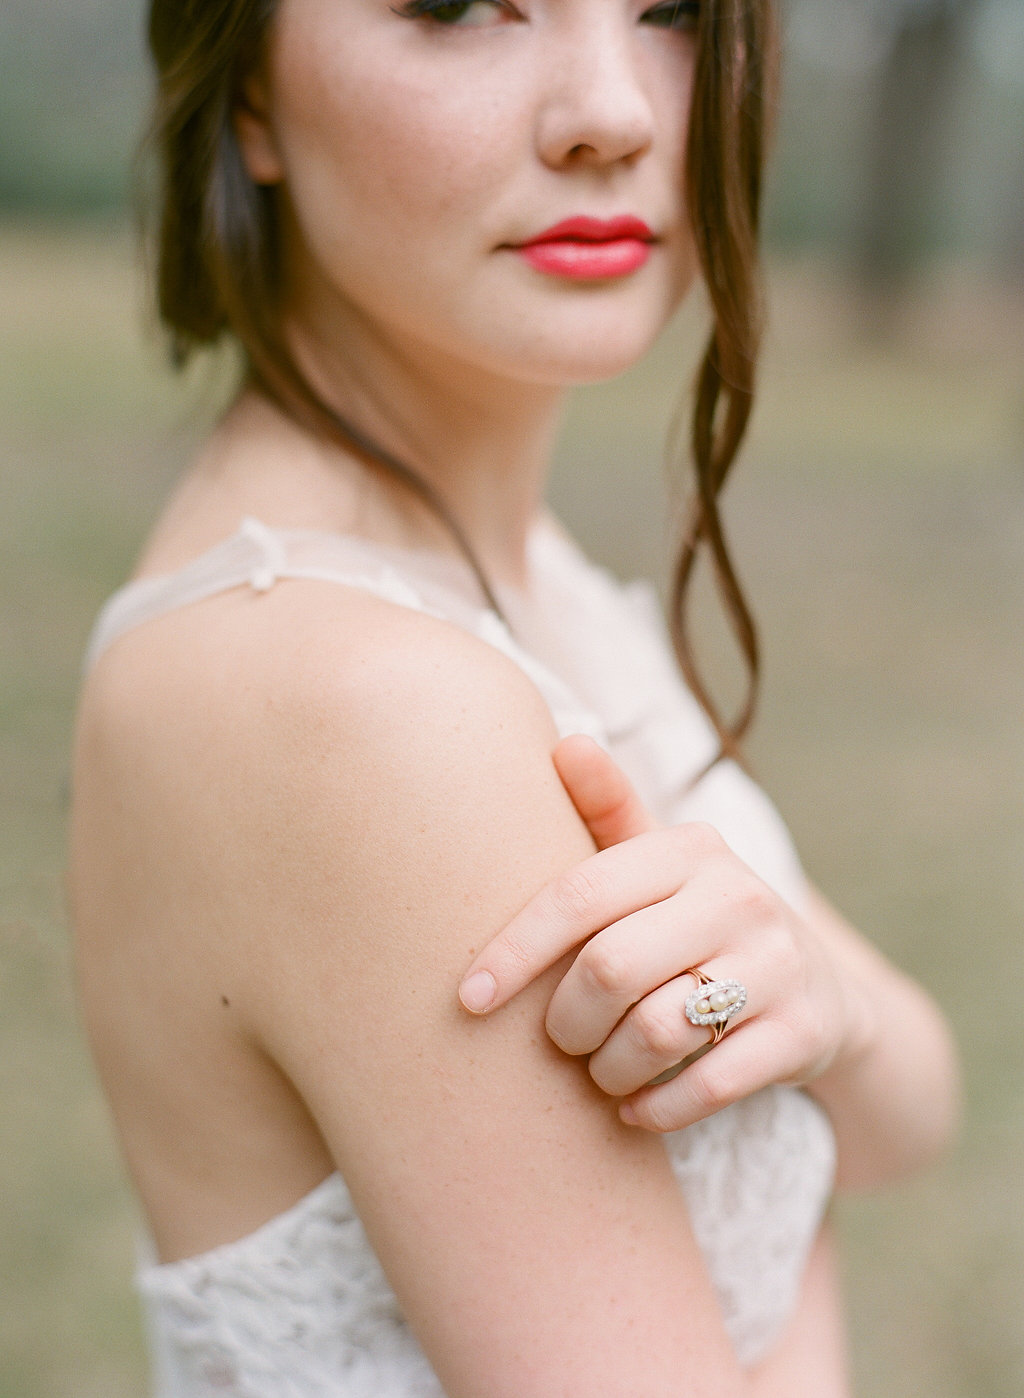 the-happy-bloom-photography-ti-adora-7553-ivory-and-beau-bridal-boutique-savannah-wedding-dresses-old-sheldon-ruins-savannah-wedding-planner-savannah-event-designer-savannah-weddings-savannah-film-photographer-savannah-photography-workshop-3.jpg